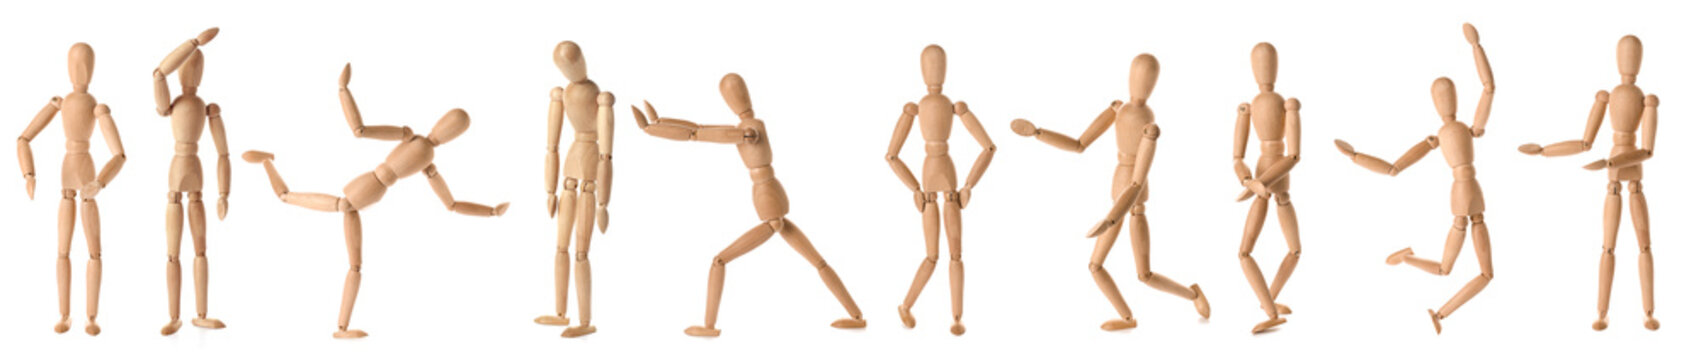 Collage of wooden mannequins in different positions on white background